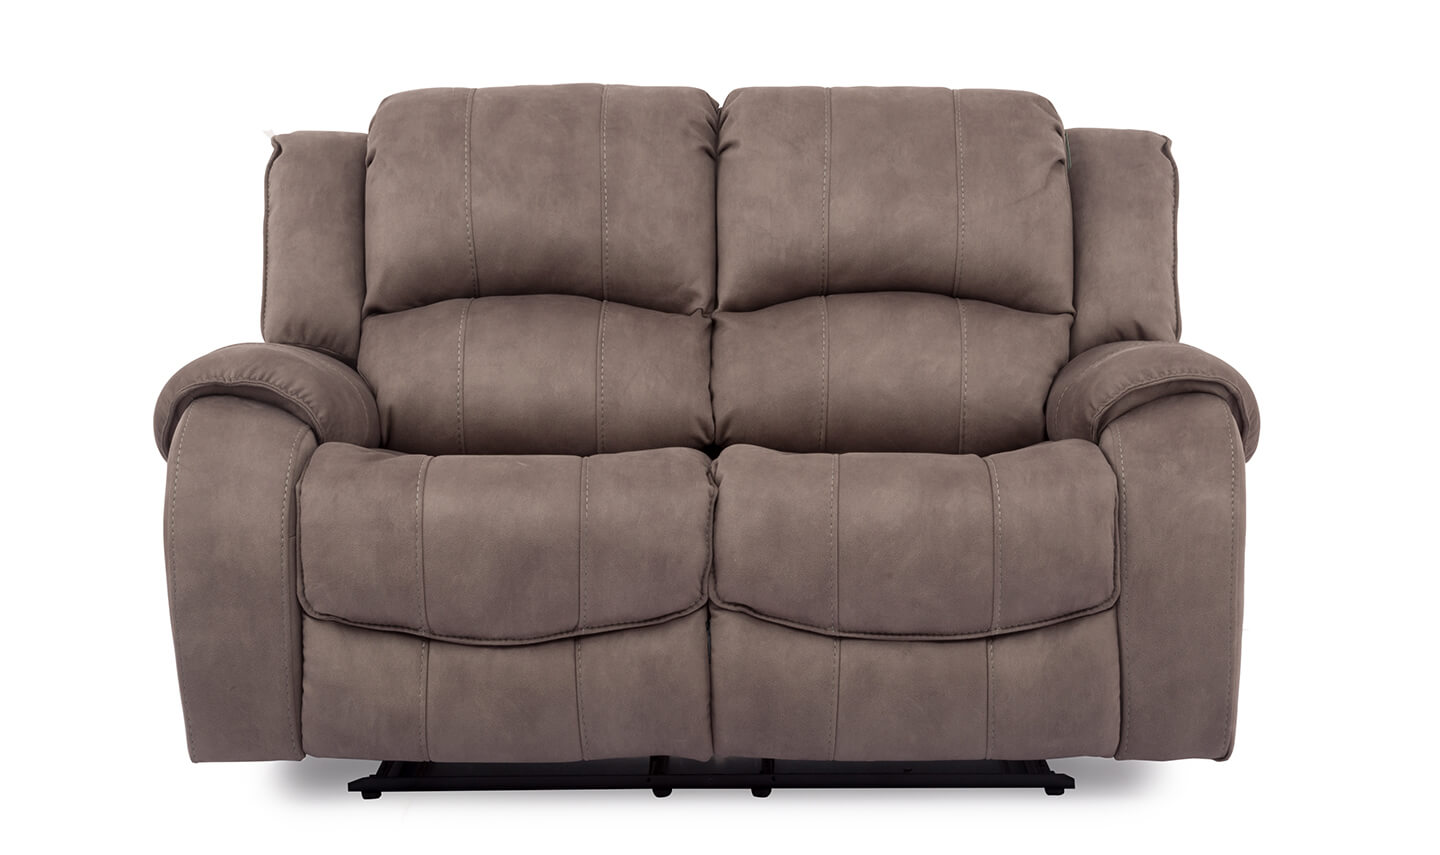 Darwin 2 Seater Recliner Smoke